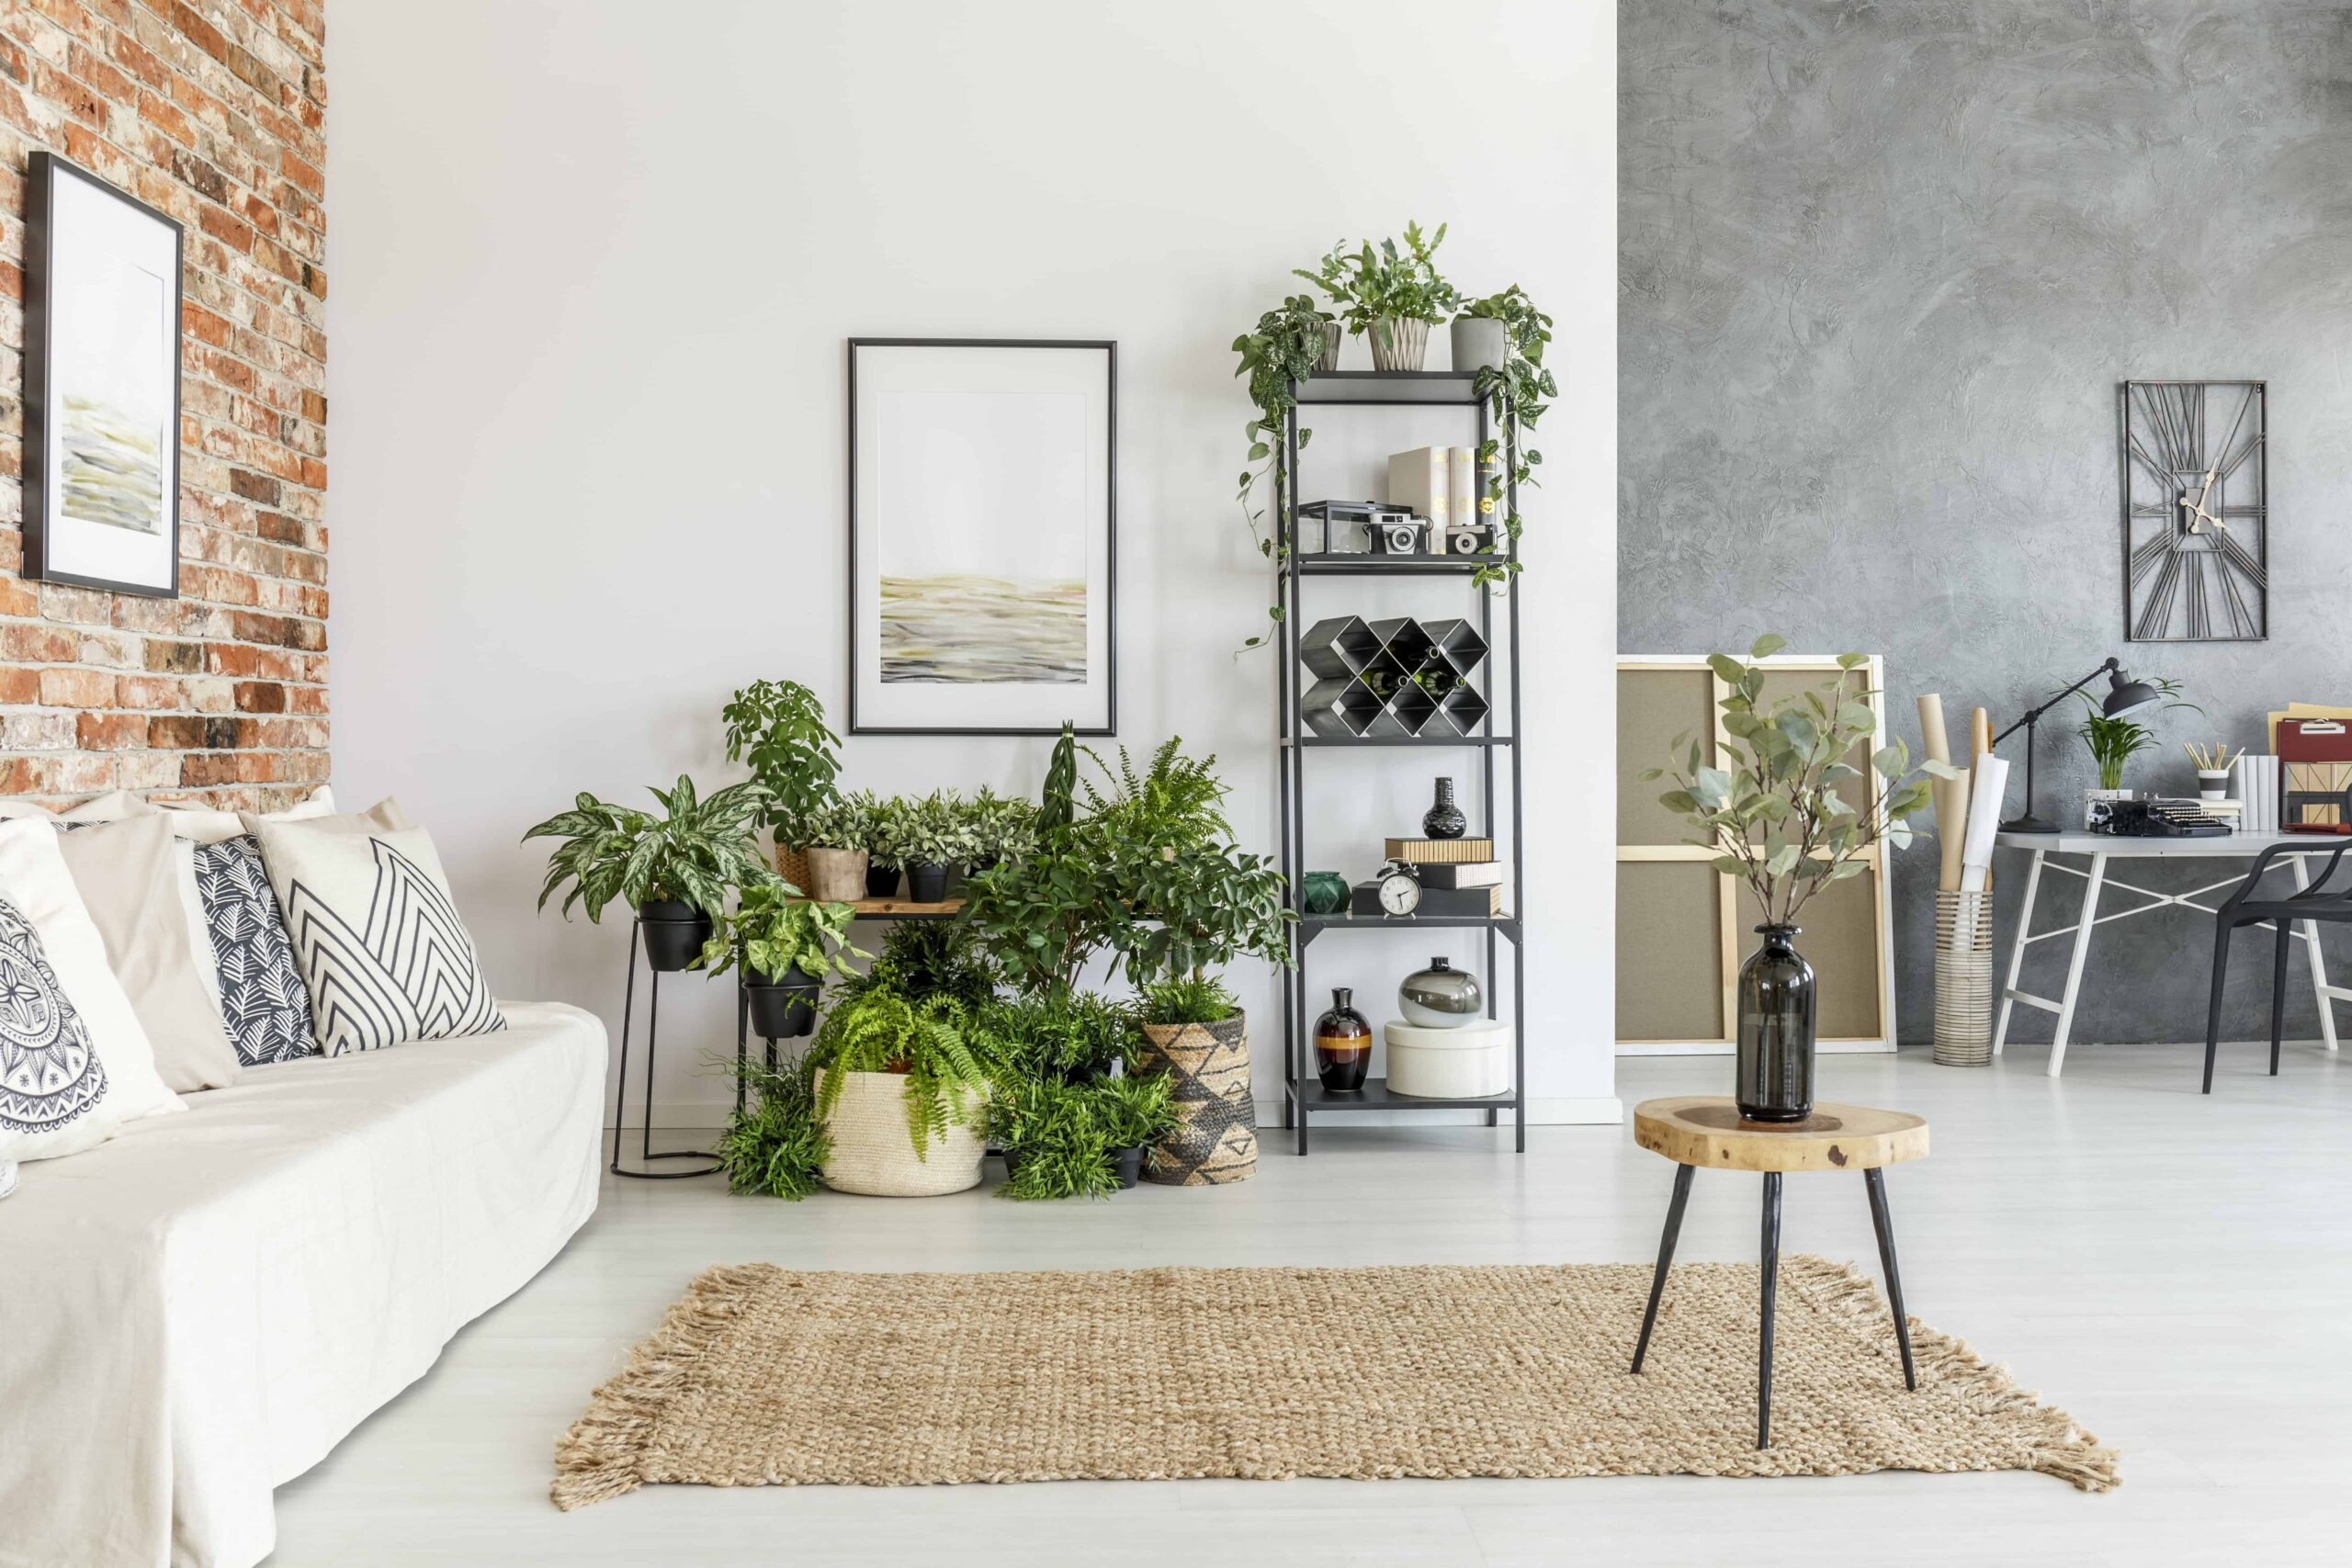 30 Indoor Plant Decor Ideas How To Display Your Houseplants 2021